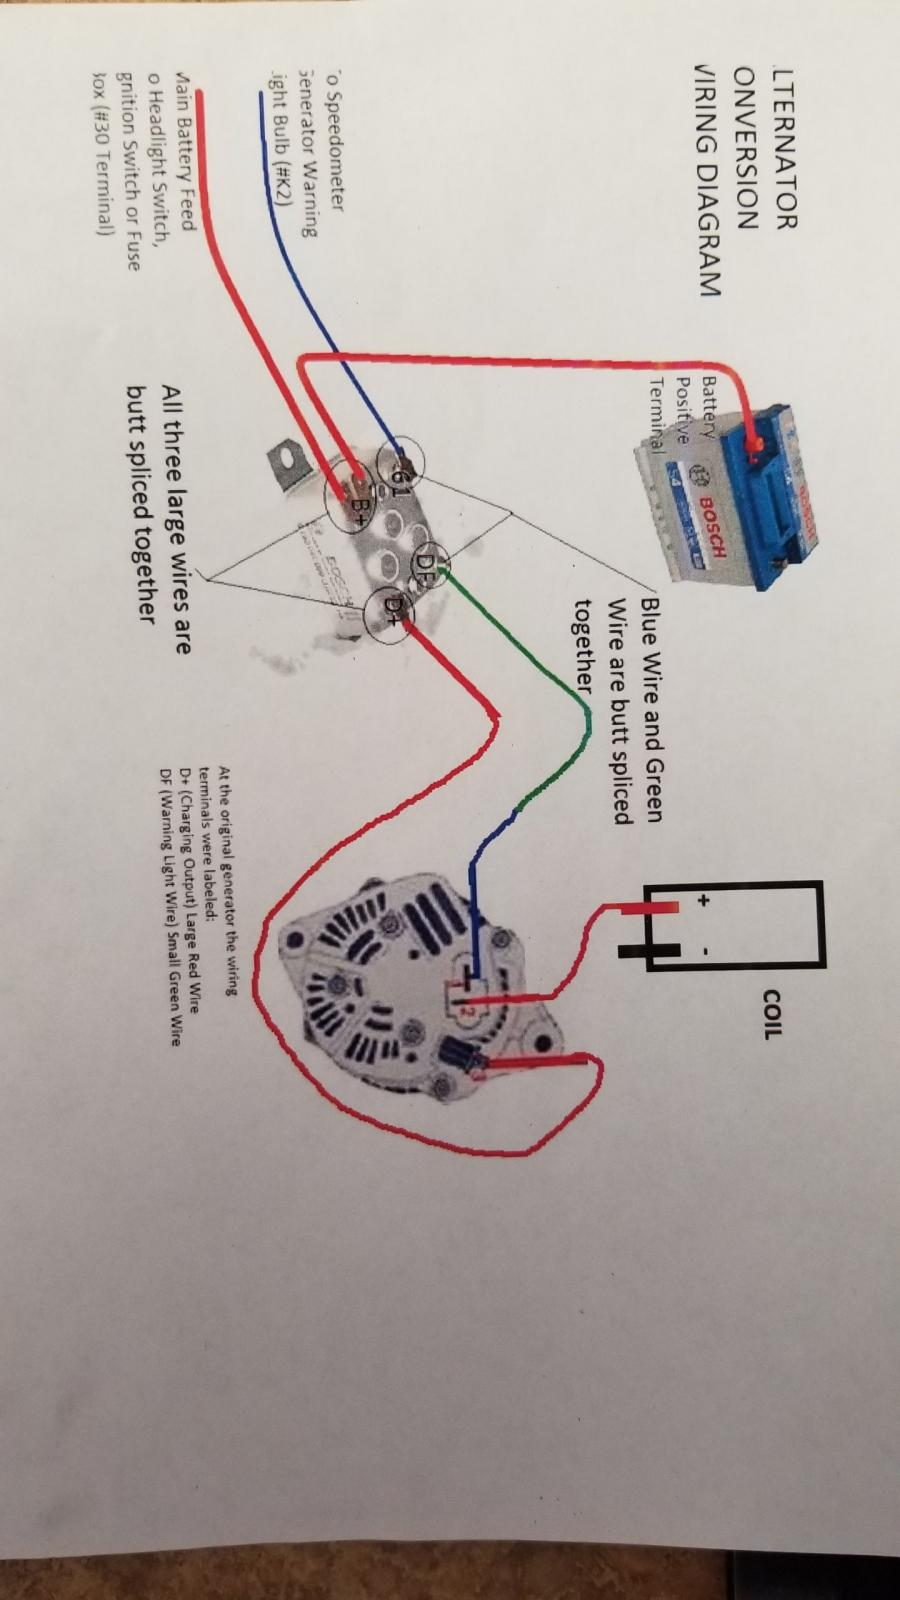 Beetle Late Model Super 1968 Up View Topic Wiring Diagram For Generator To Alternator Conversion Image May Have Been Reduced In Size Click Fullscreen